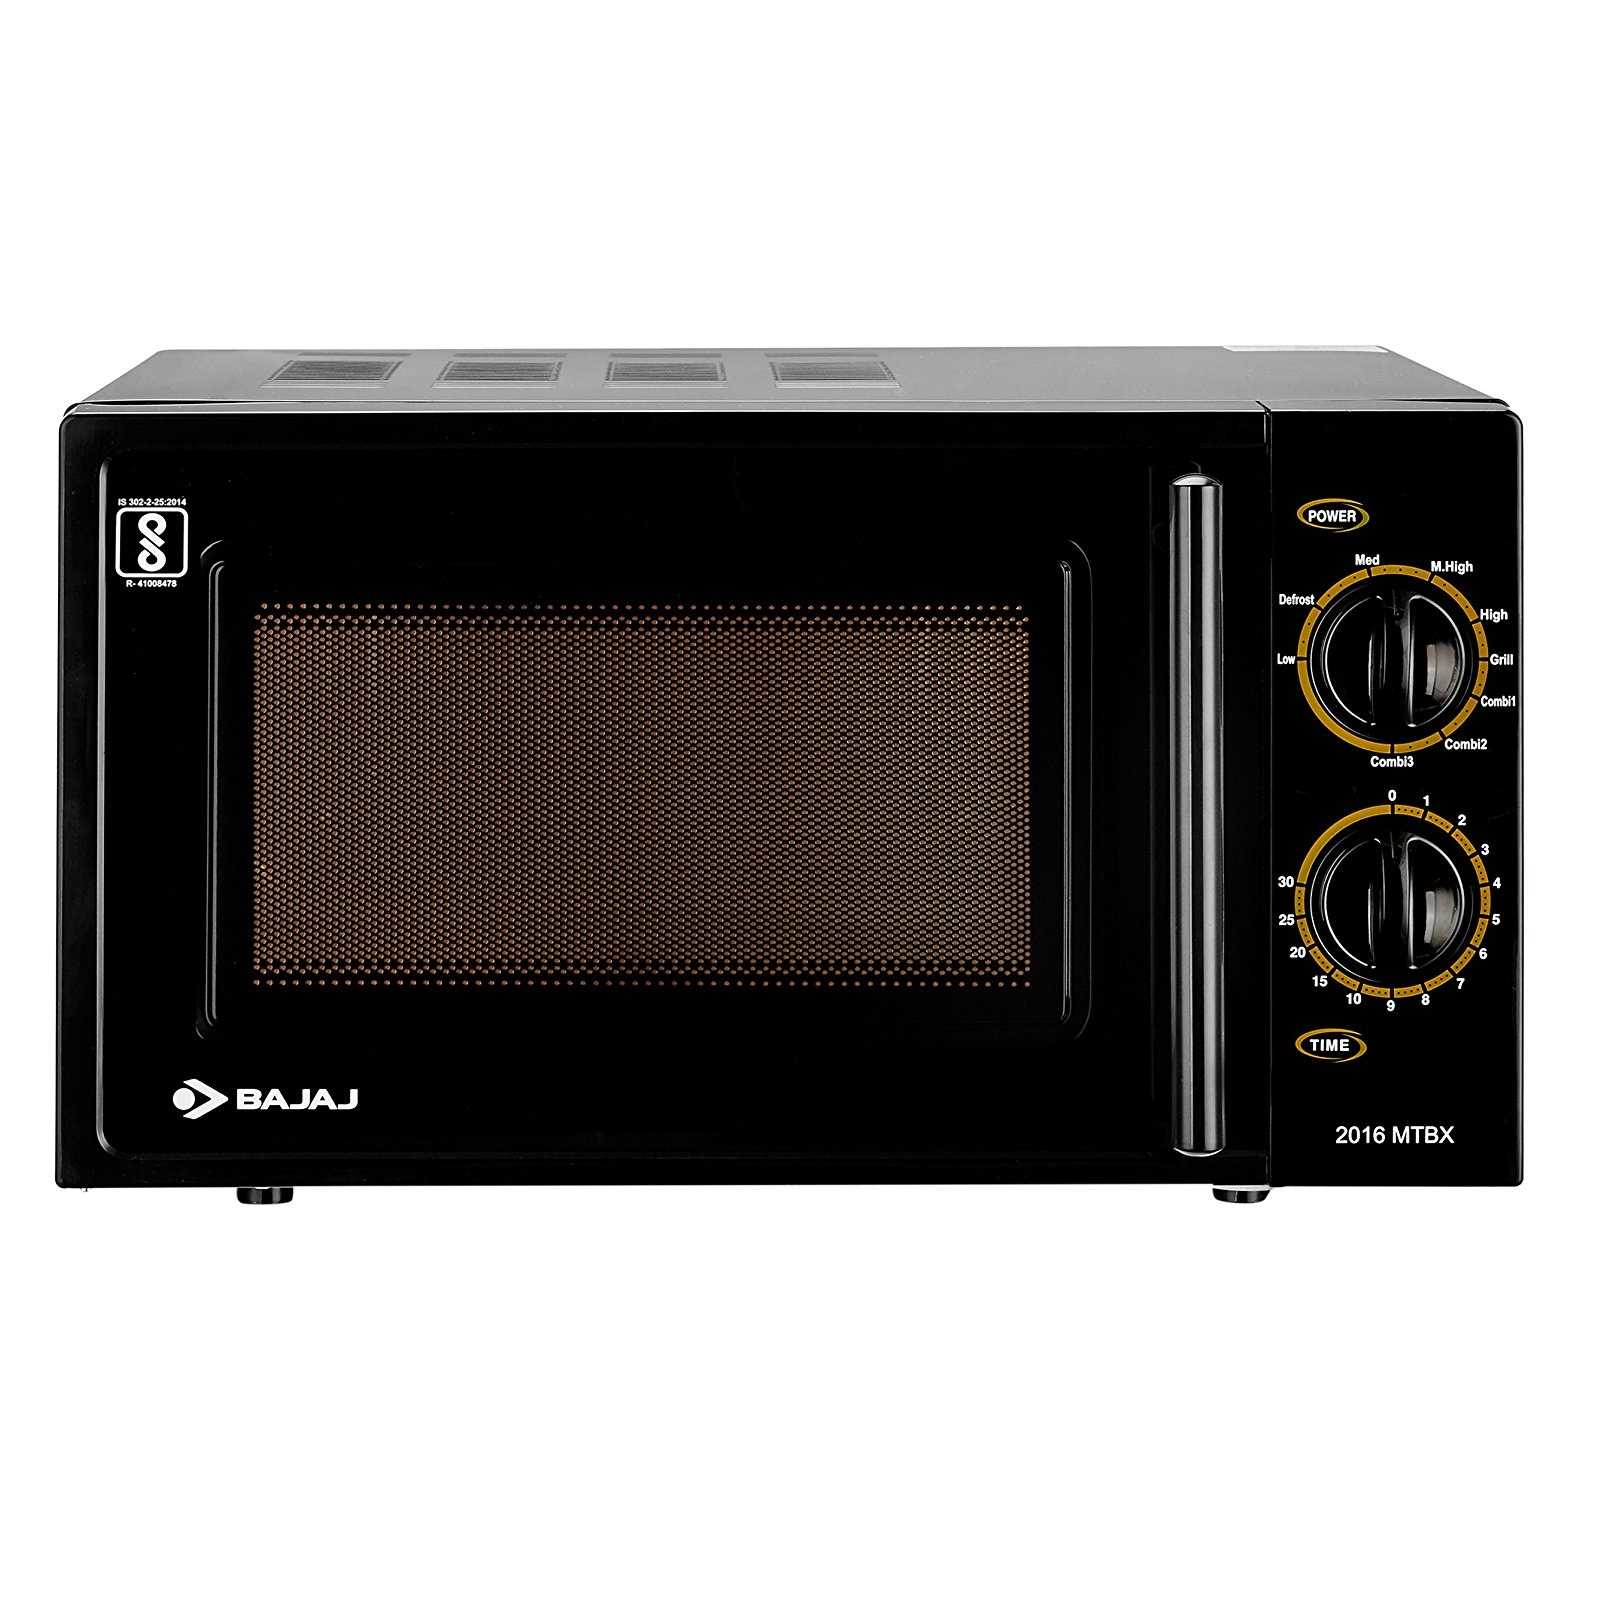 Bajaj MTBX 2016 20 Litres Grill Microwave Oven